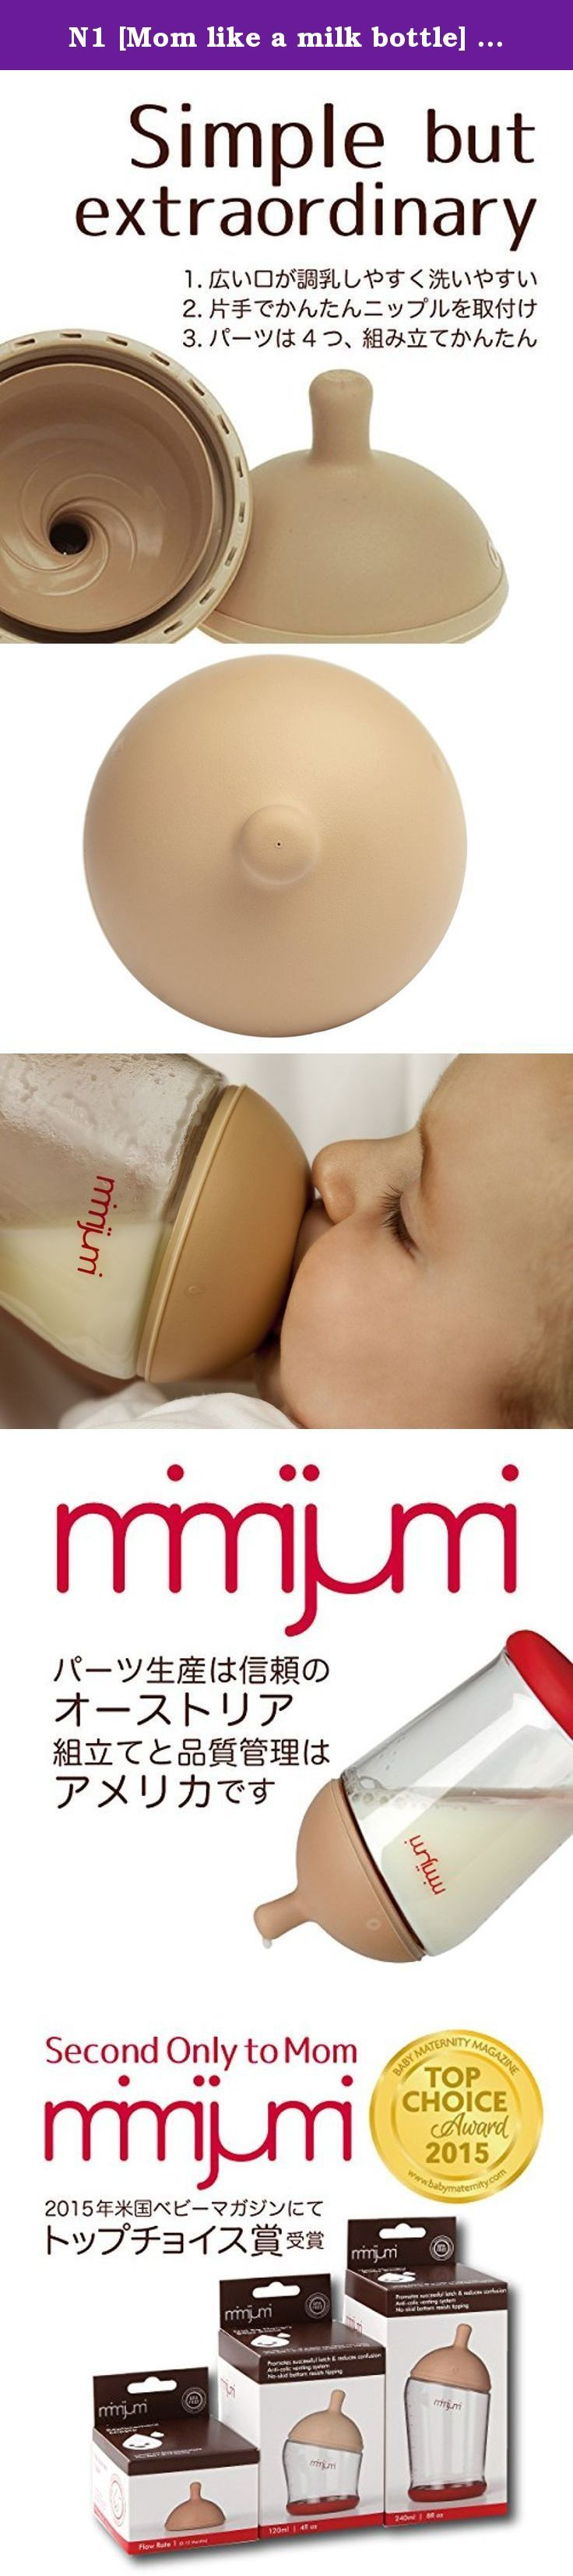 N1 [Mom like a milk bottle] mimijumi Mimijumi nipple 1 (slowly) 0-12 or changeover nipple round hole preparative month. mimijumi of nipple color and feel as close as possible to the mom of boobs. In the suck hole round hole, the baby will control the amount of drink in their own power, such as when to drink the milk. Without the baby to confusion, the transition from breast milk to baby bottles is smooth. In order to prevent abdominal pain (colic) due to excessive drinking of the baby in…